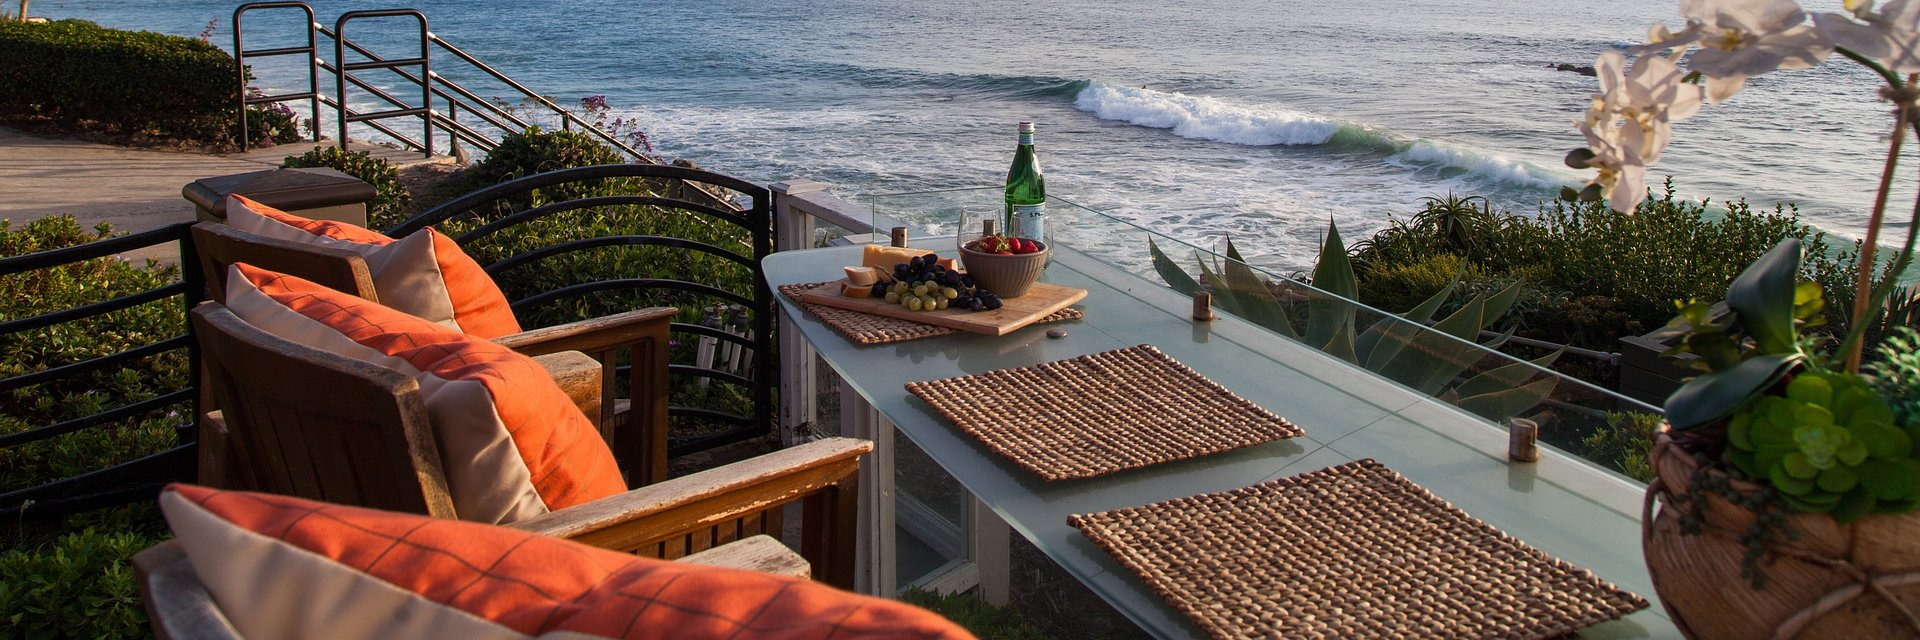 Coldwell Banker Residential Brokerage Lists Laguna Beach Property for $6.8 Million